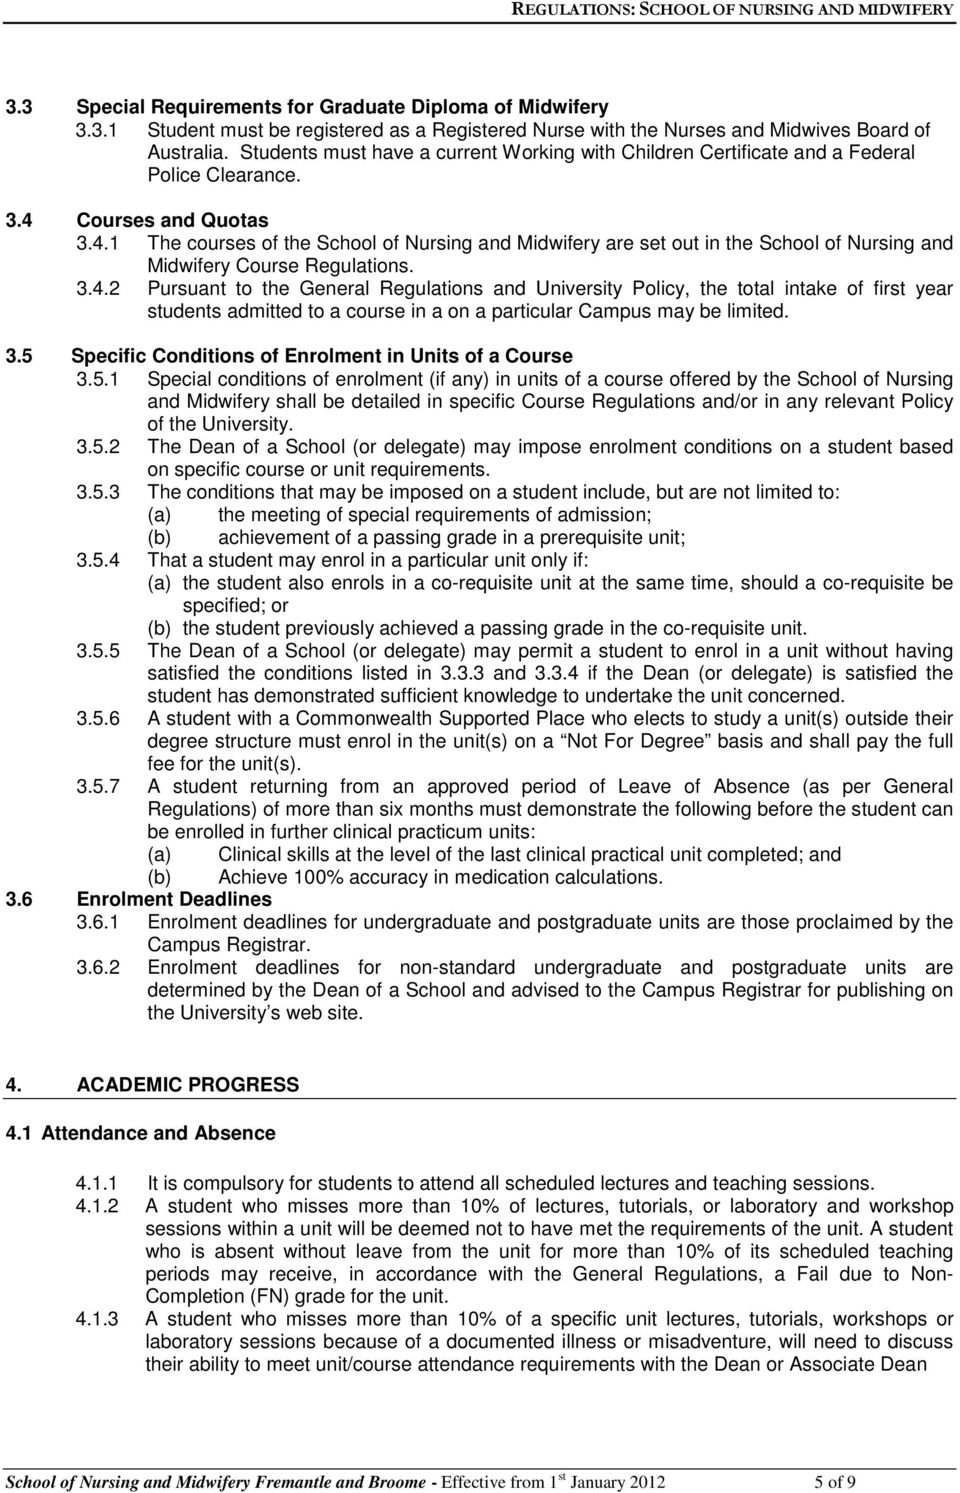 Courses and Quotas 3.4.1 The courses of the School of Nursing and Midwifery are set out in the School of Nursing and Midwifery Course Regulations. 3.4.2 Pursuant to the General Regulations and University Policy, the total intake of first year students admitted to a course in a on a particular Campus may be limited.